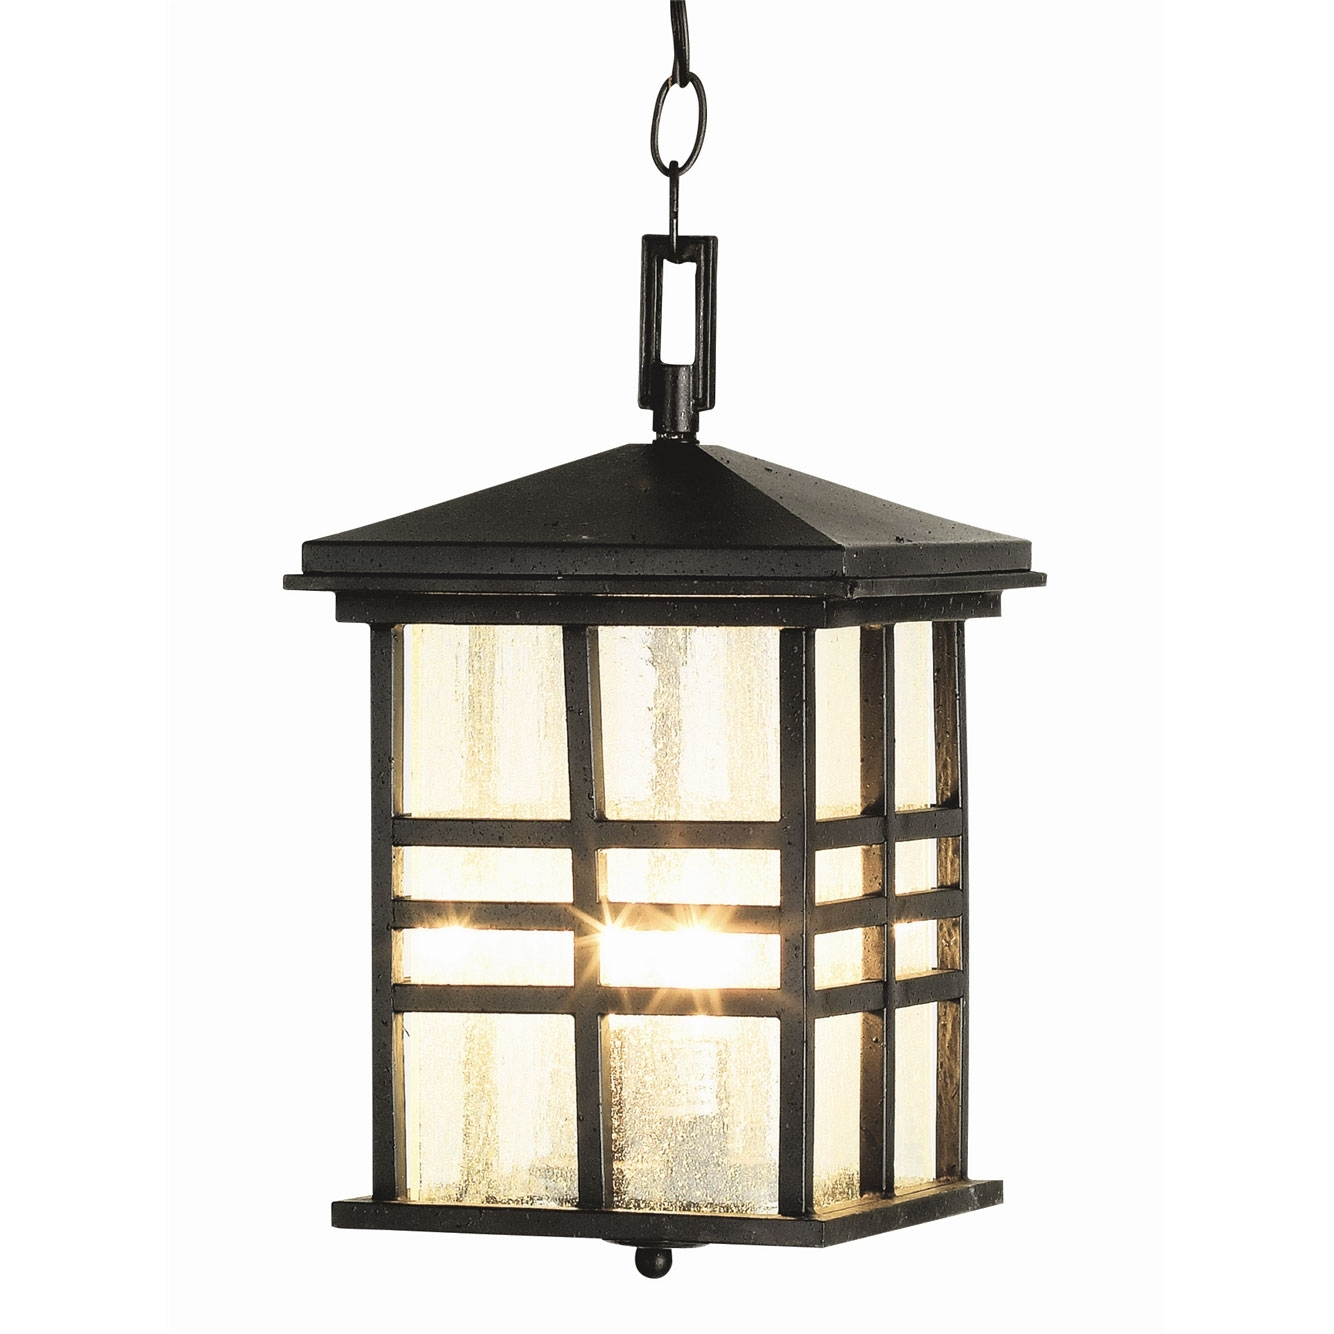 Rustic Craftsman Outdoor Hanging Lanterntrans Globe | 4638 Bk regarding Outdoor Rustic Lanterns (Image 14 of 20)